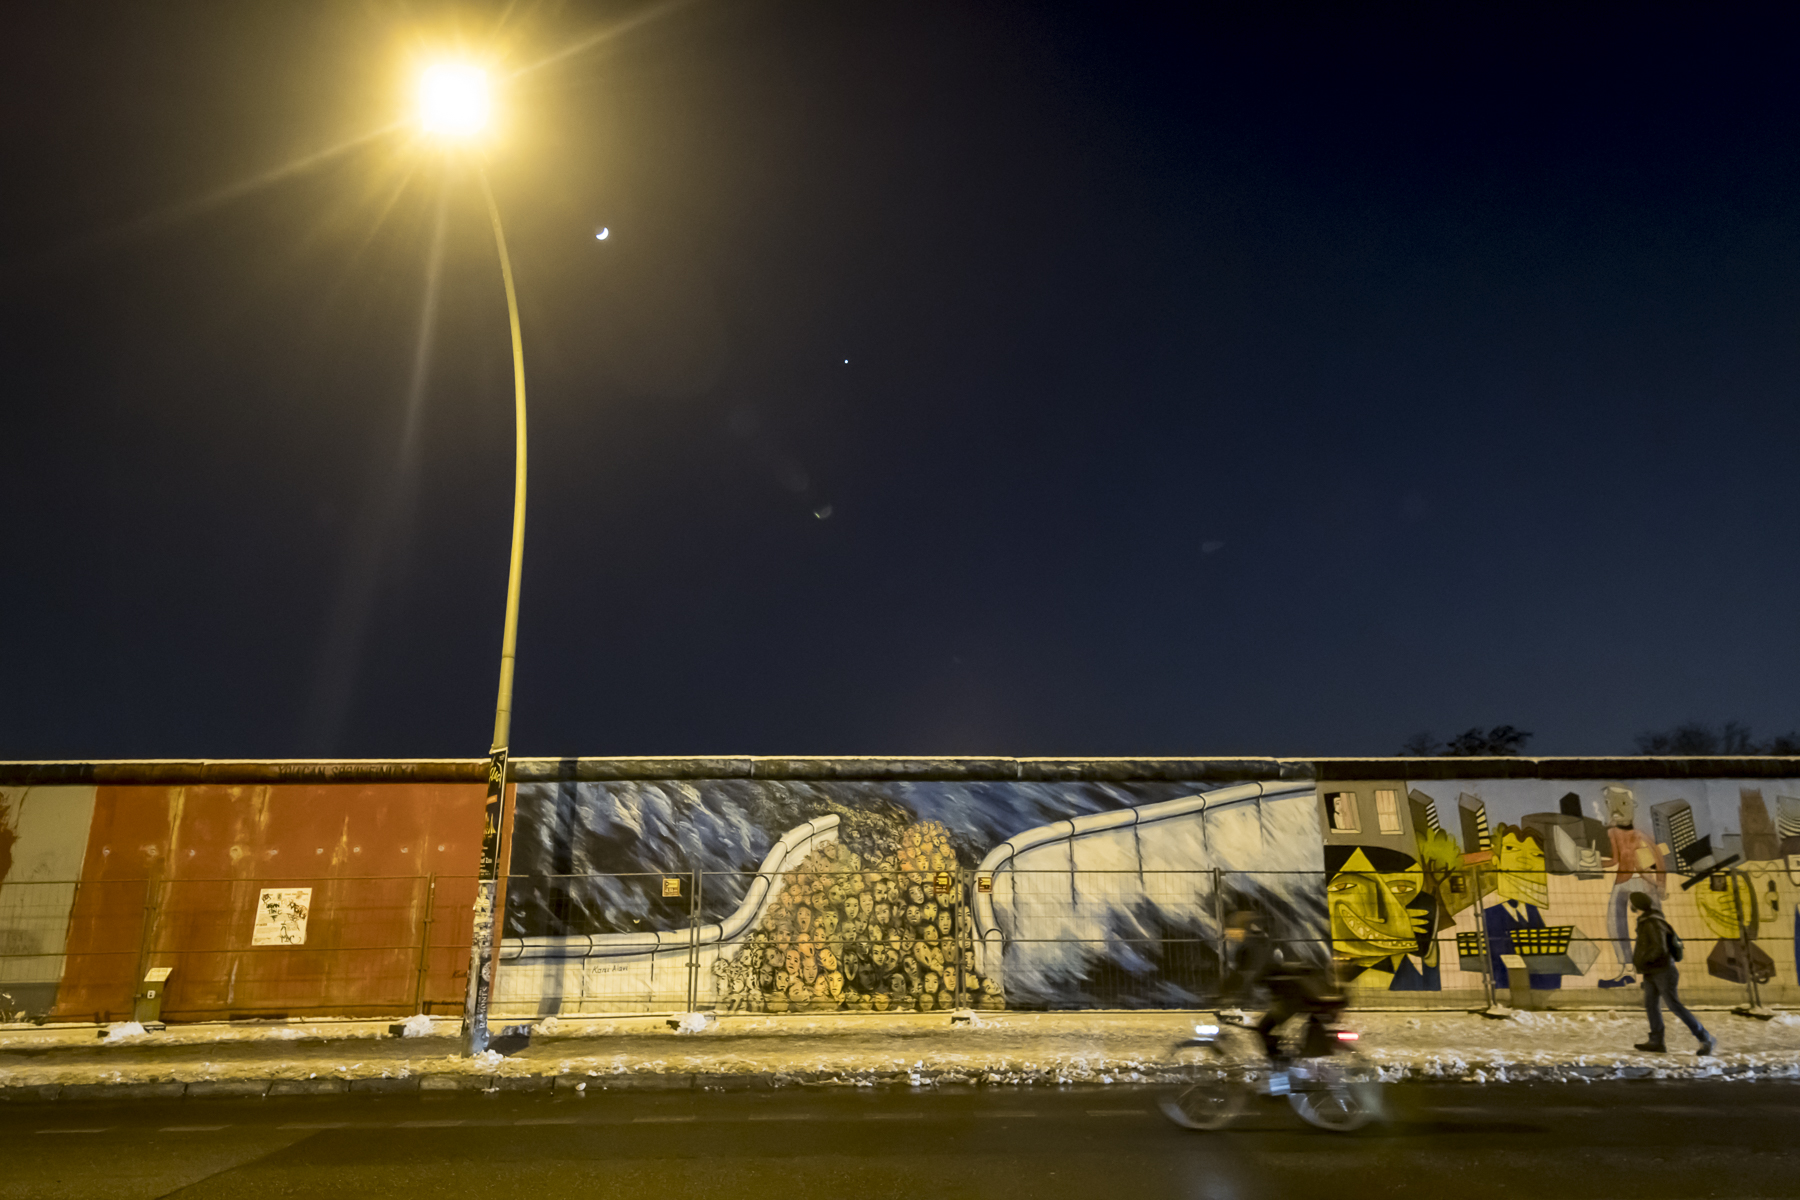 East Side Gallery Photography : Alexander J.E. Bradley - Nikon D500 - 14-70mm f/2.8 @ 14mm - f2.8 - 1/40 - ISO 3200